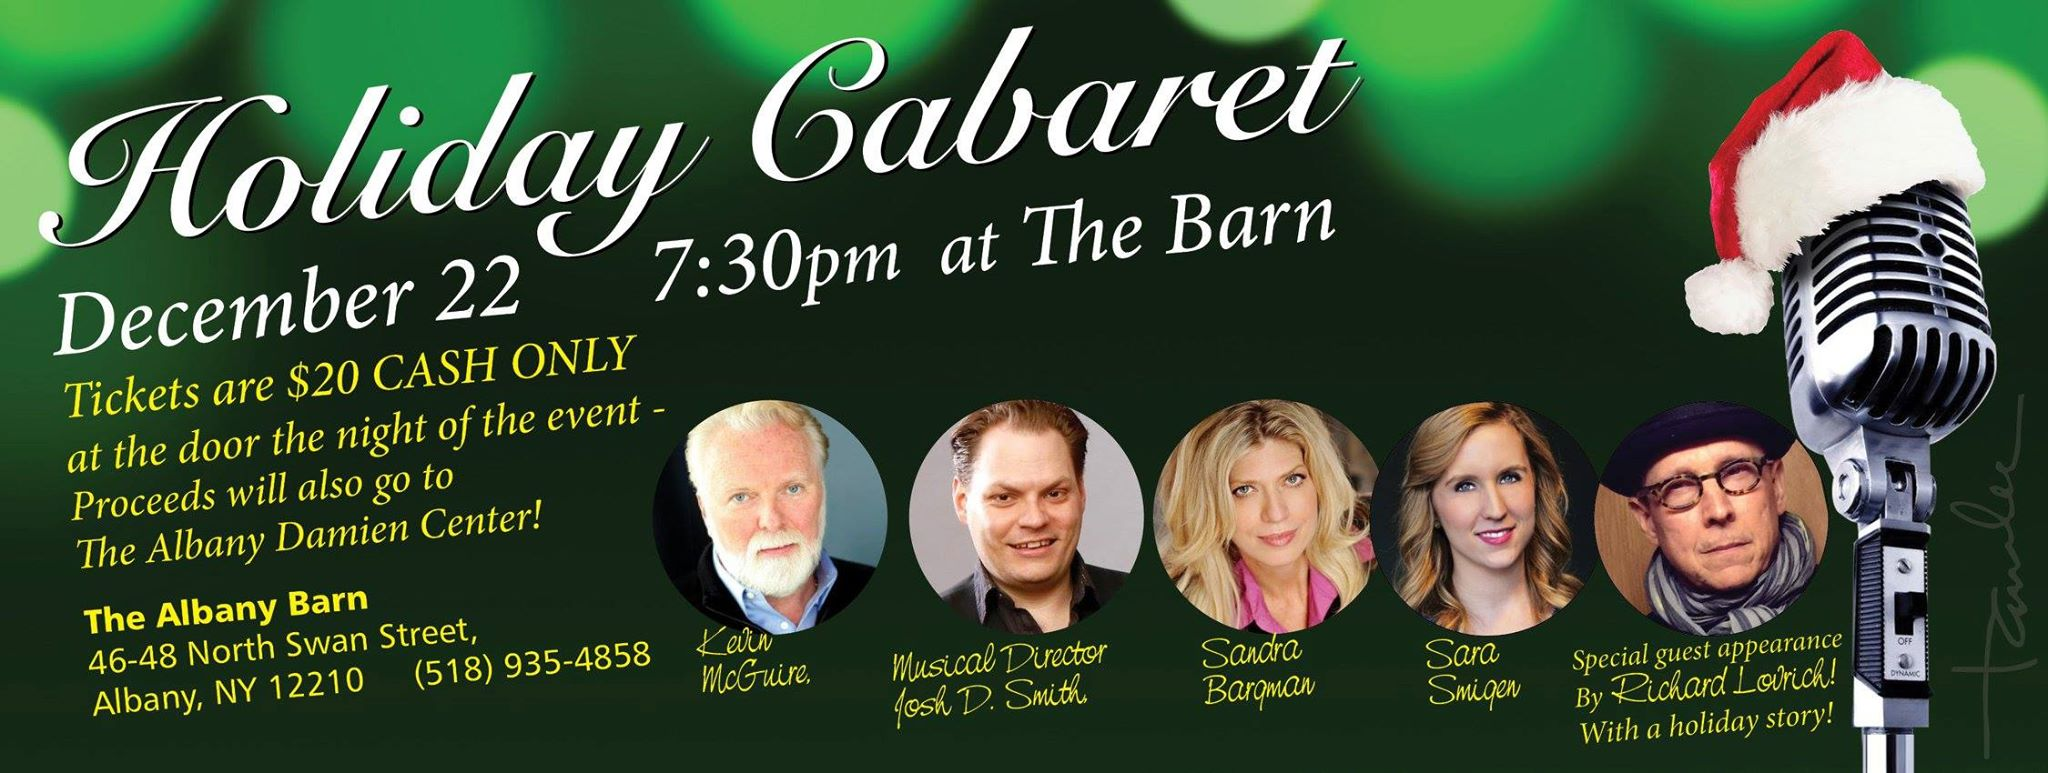 Holiday Cabaret!